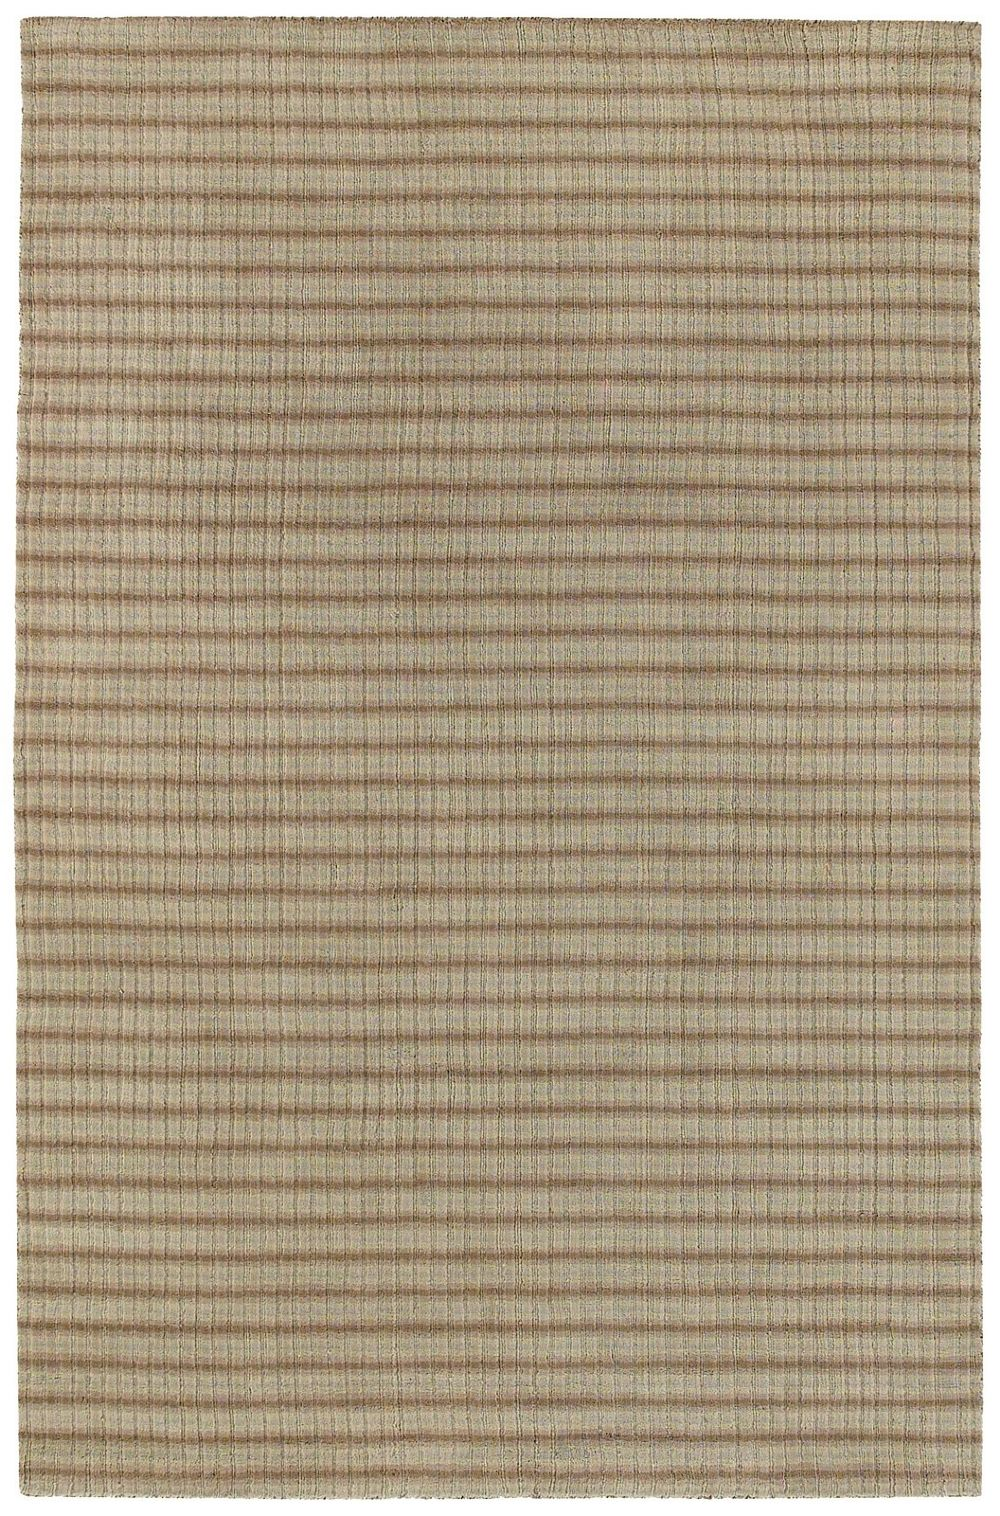 surya indus valley contemporary area rug collection